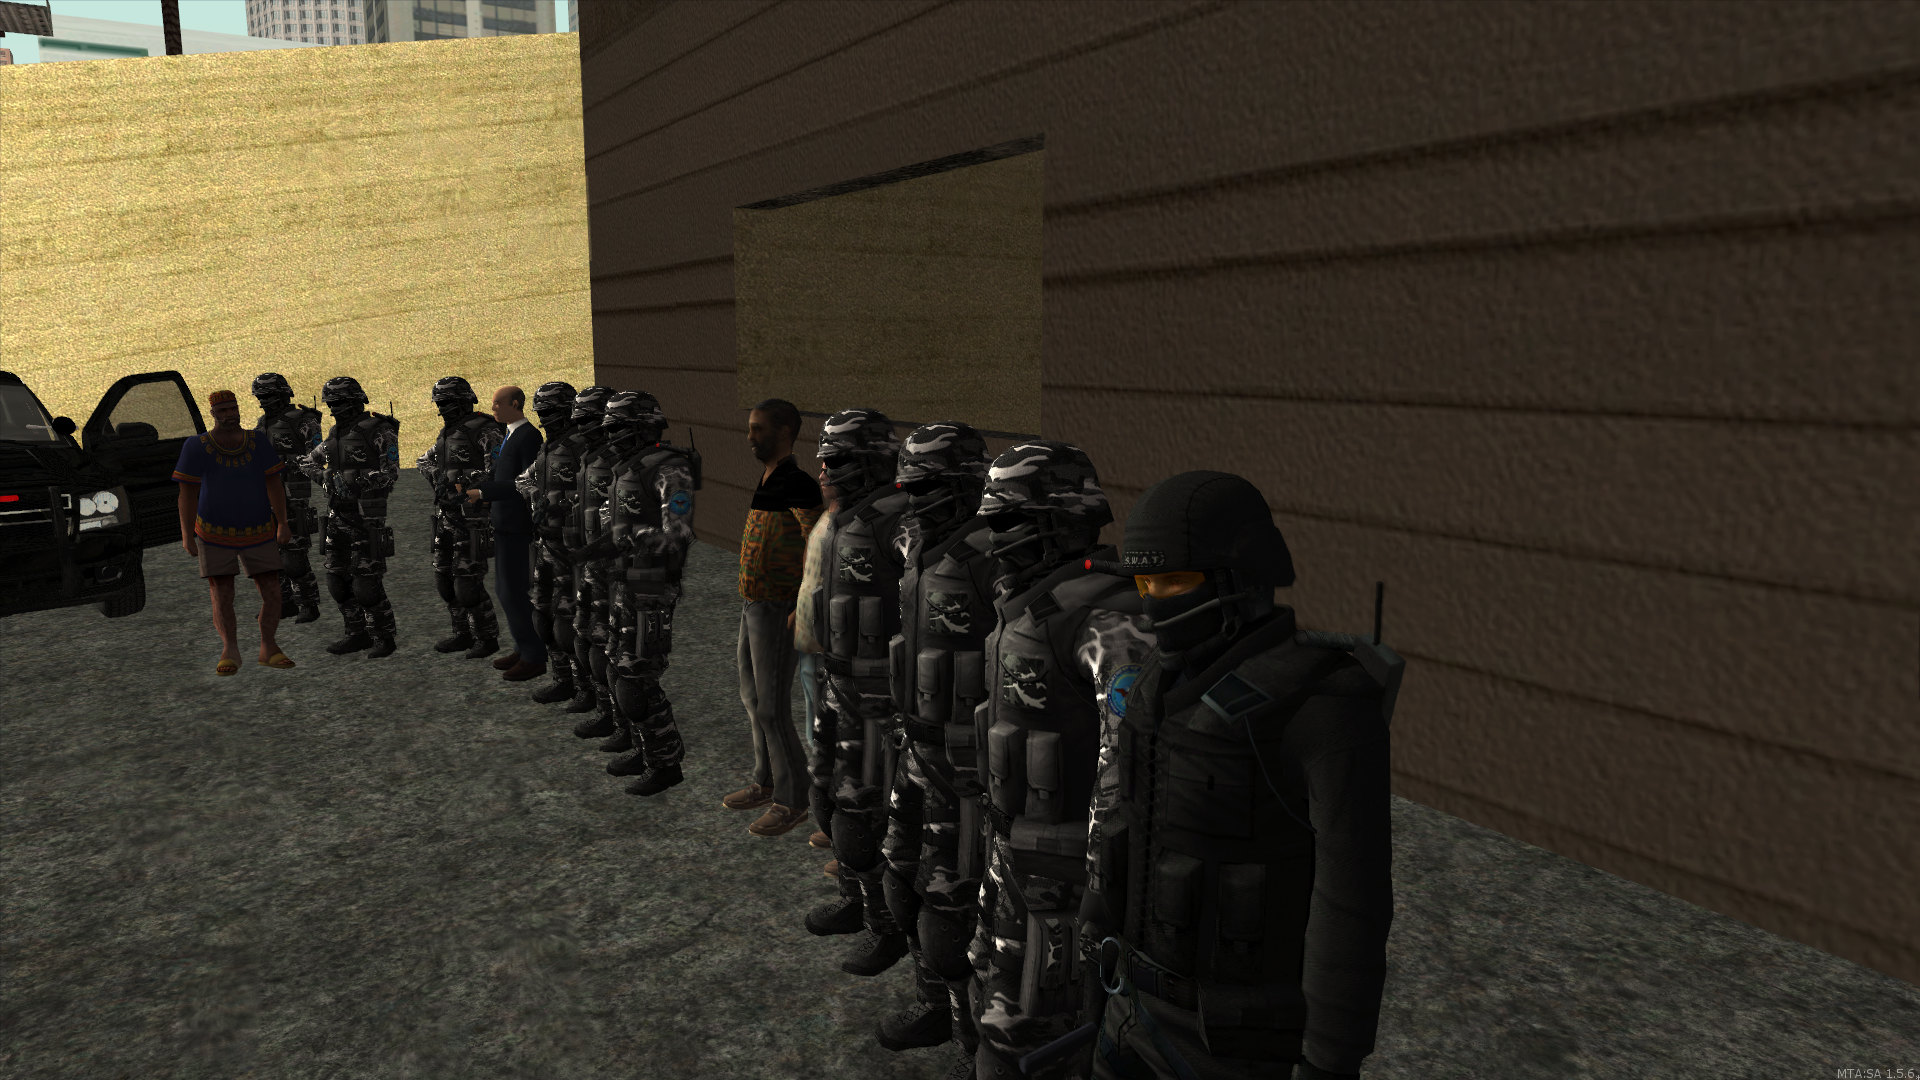 SWAT Team ready for the mission - posted by MaXKillS